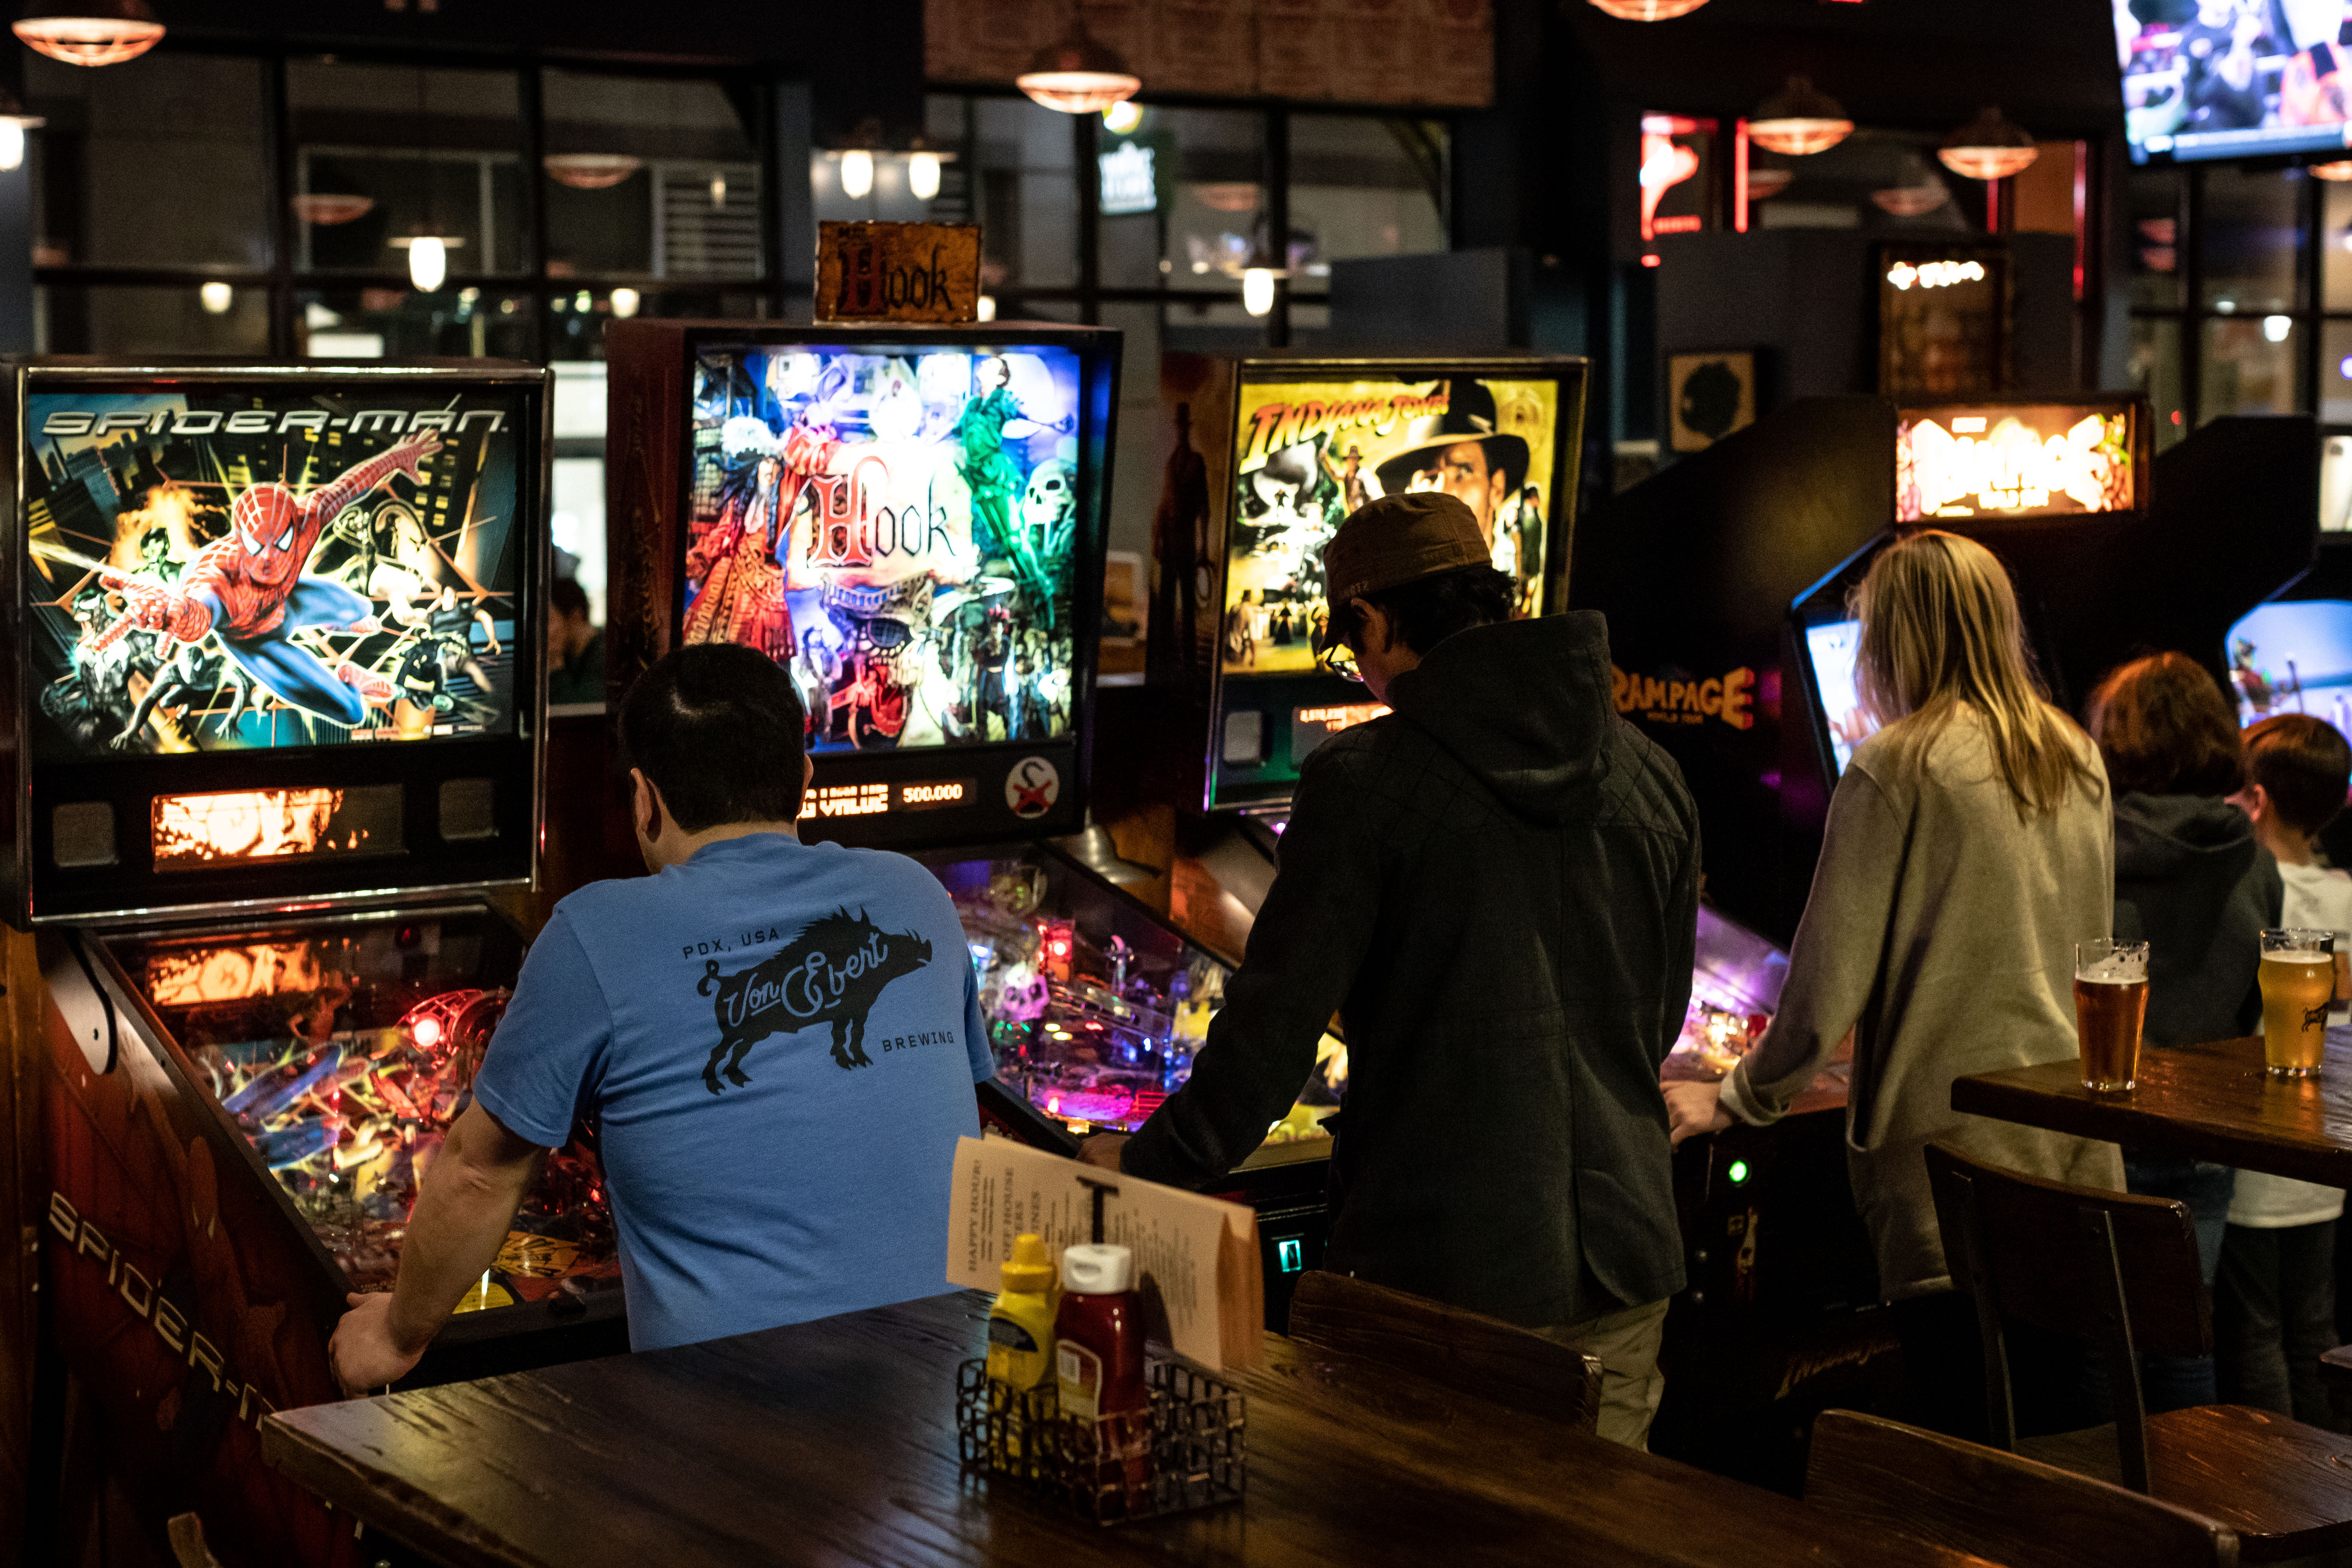 New video games and pinball have been added to Von Ebert Brewing in the Pearl District. (image courtesy of Von Ebert Brewing)